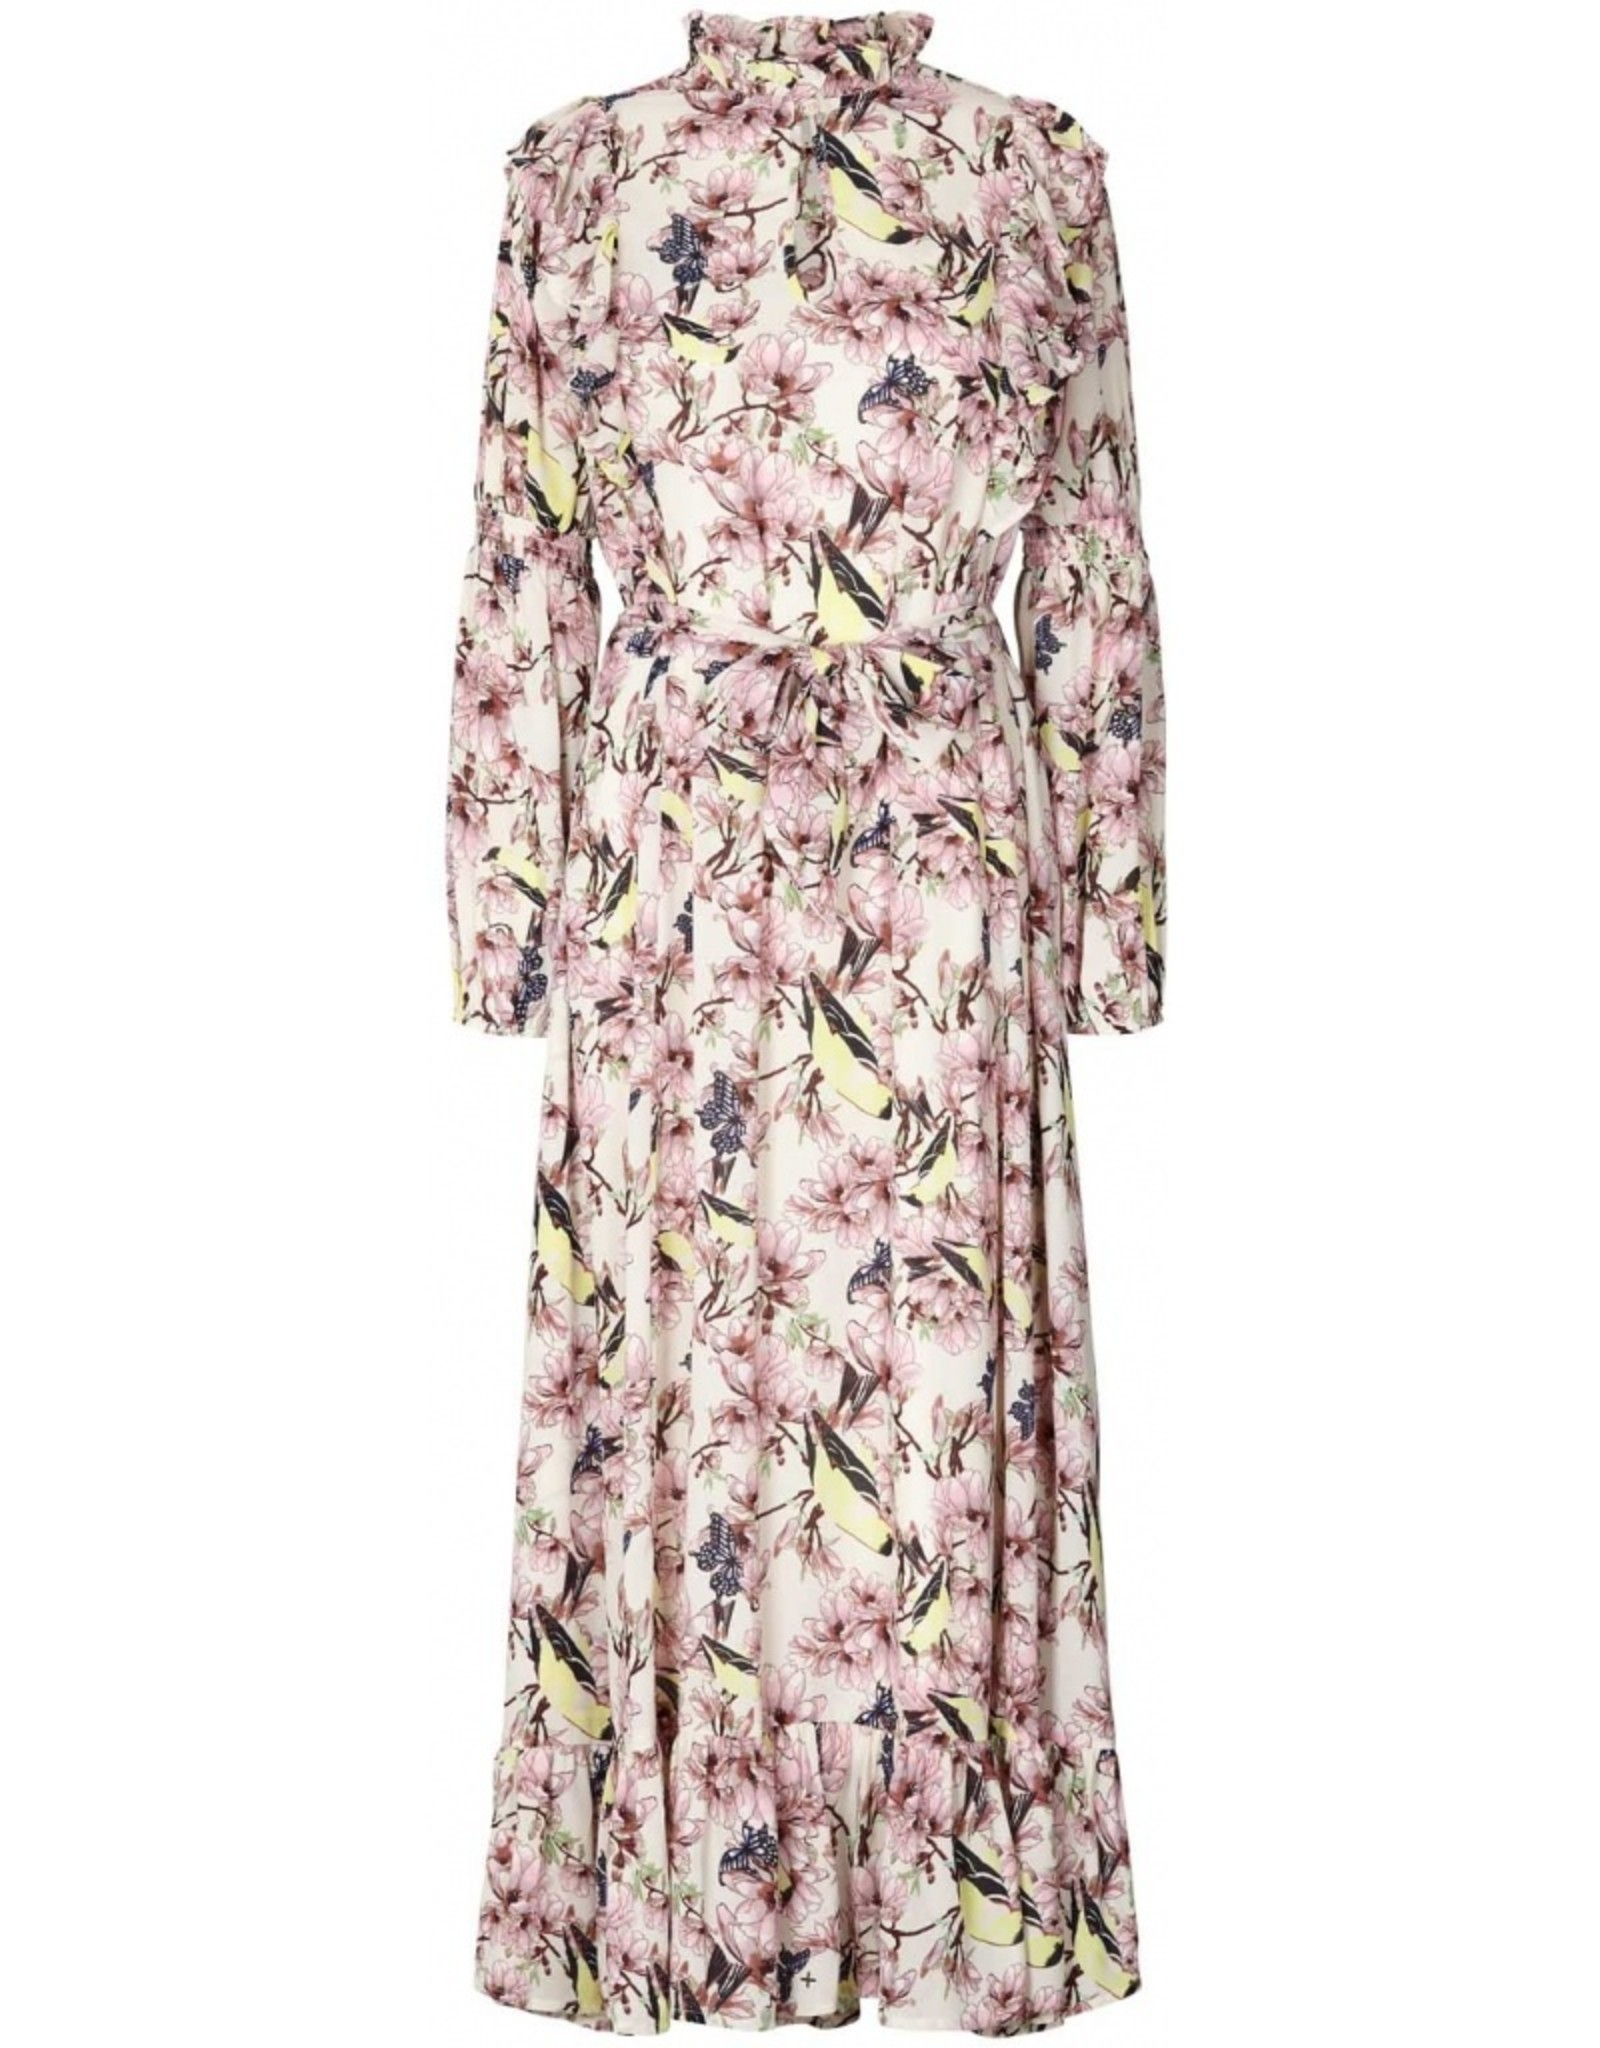 Lolly's Laundry Lolly's laundry - Sanni dress flower print